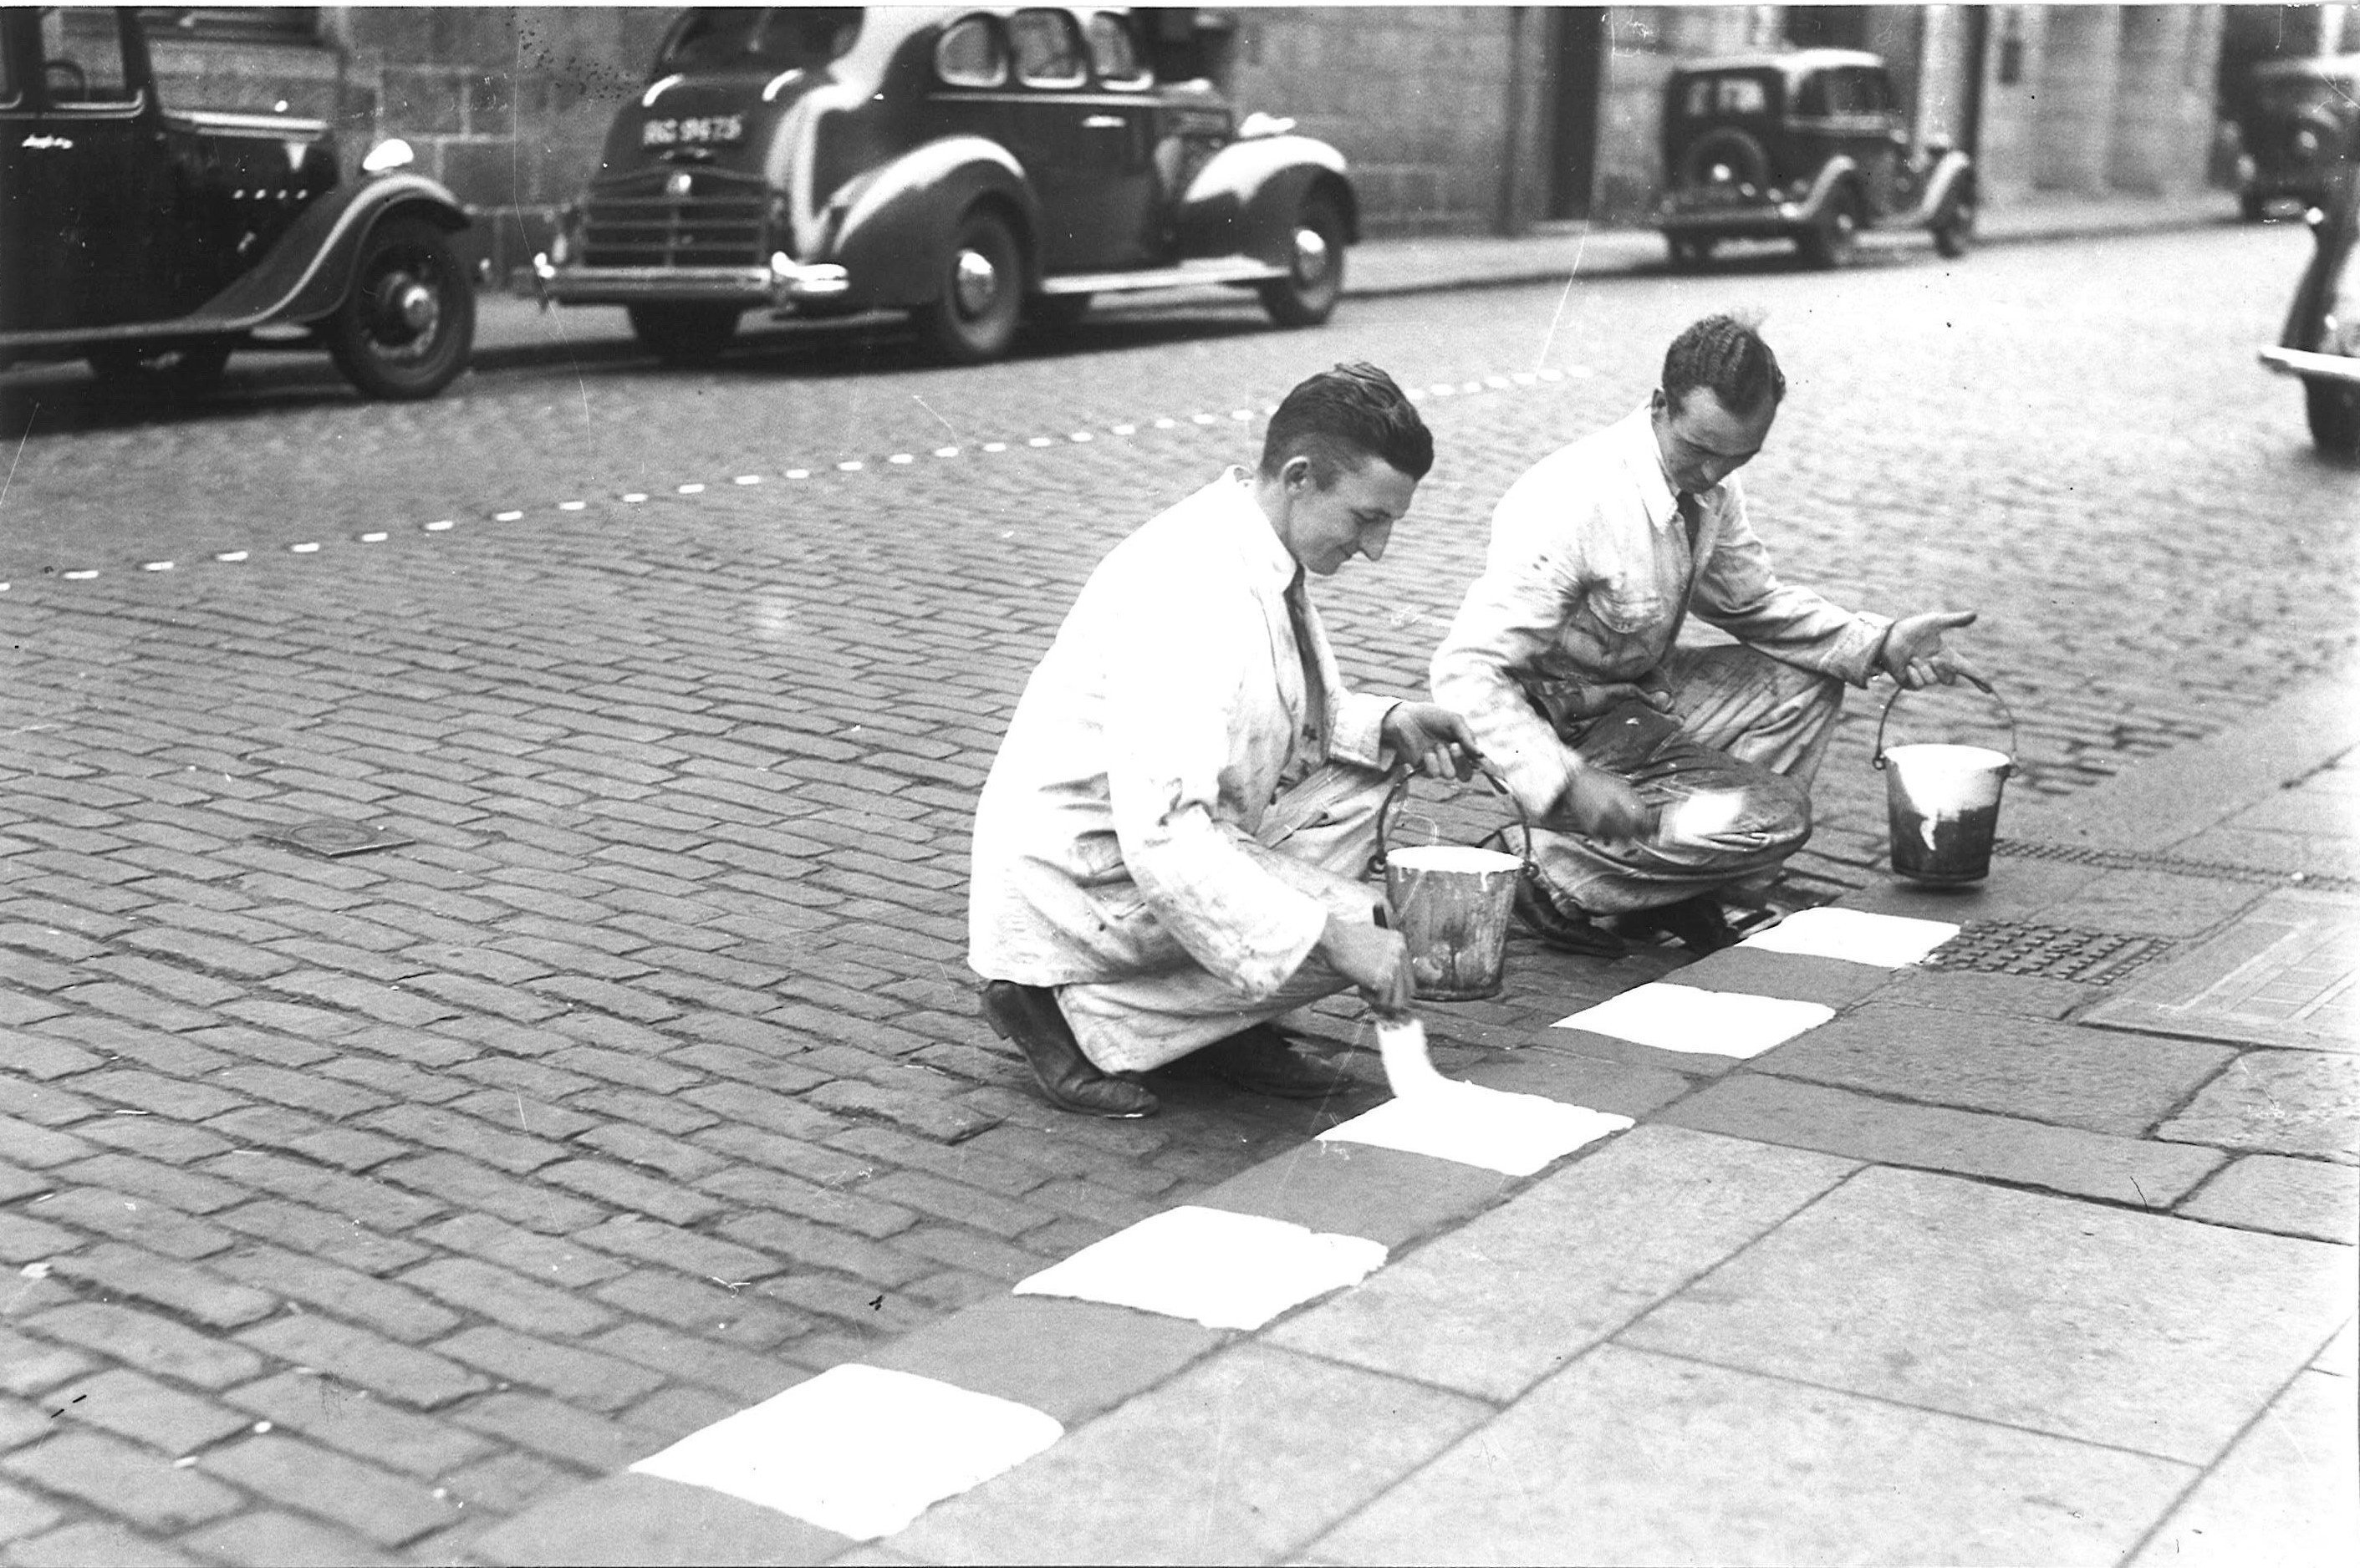 Pavements' edges were painted so they could be seen during blackouts